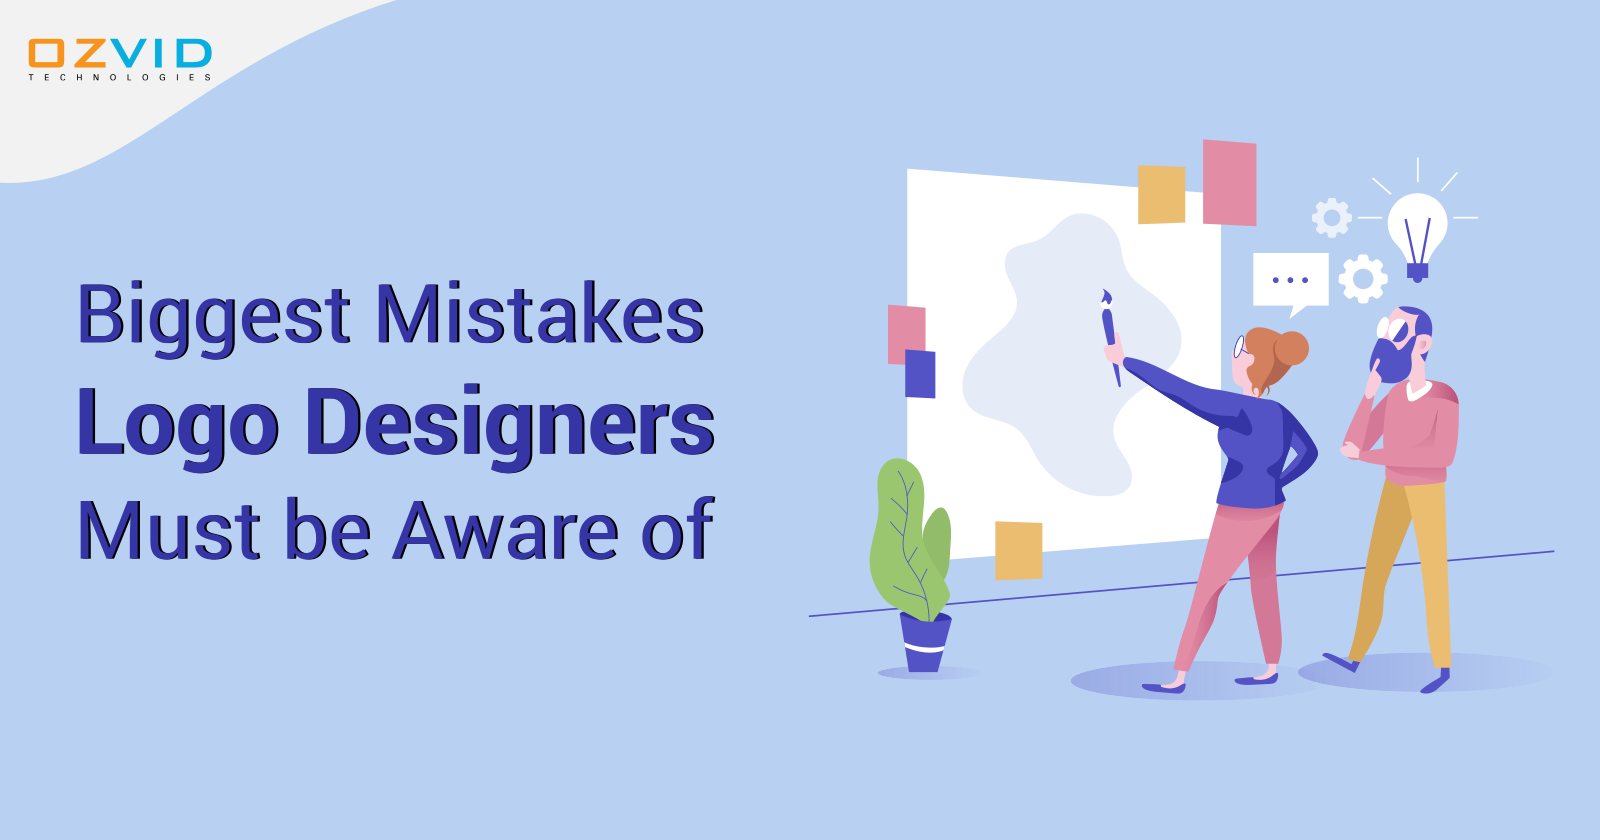 Biggest Mistakes Logo Designers Commit